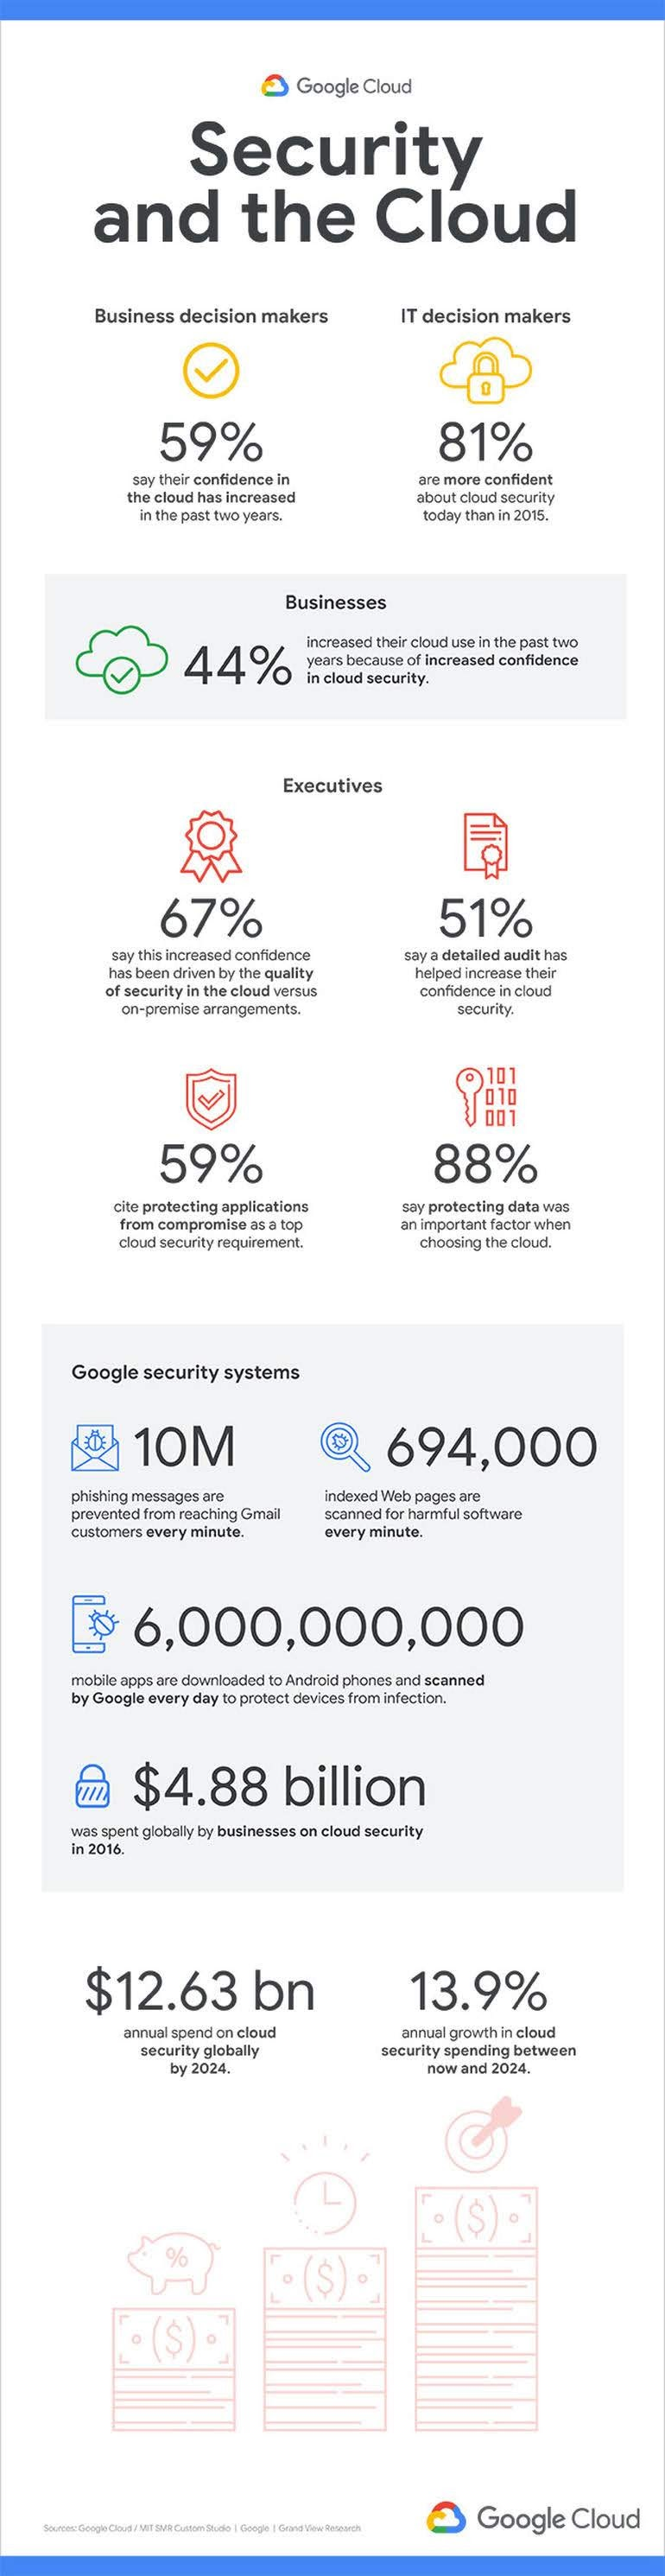 Security and the Cloud #infographic